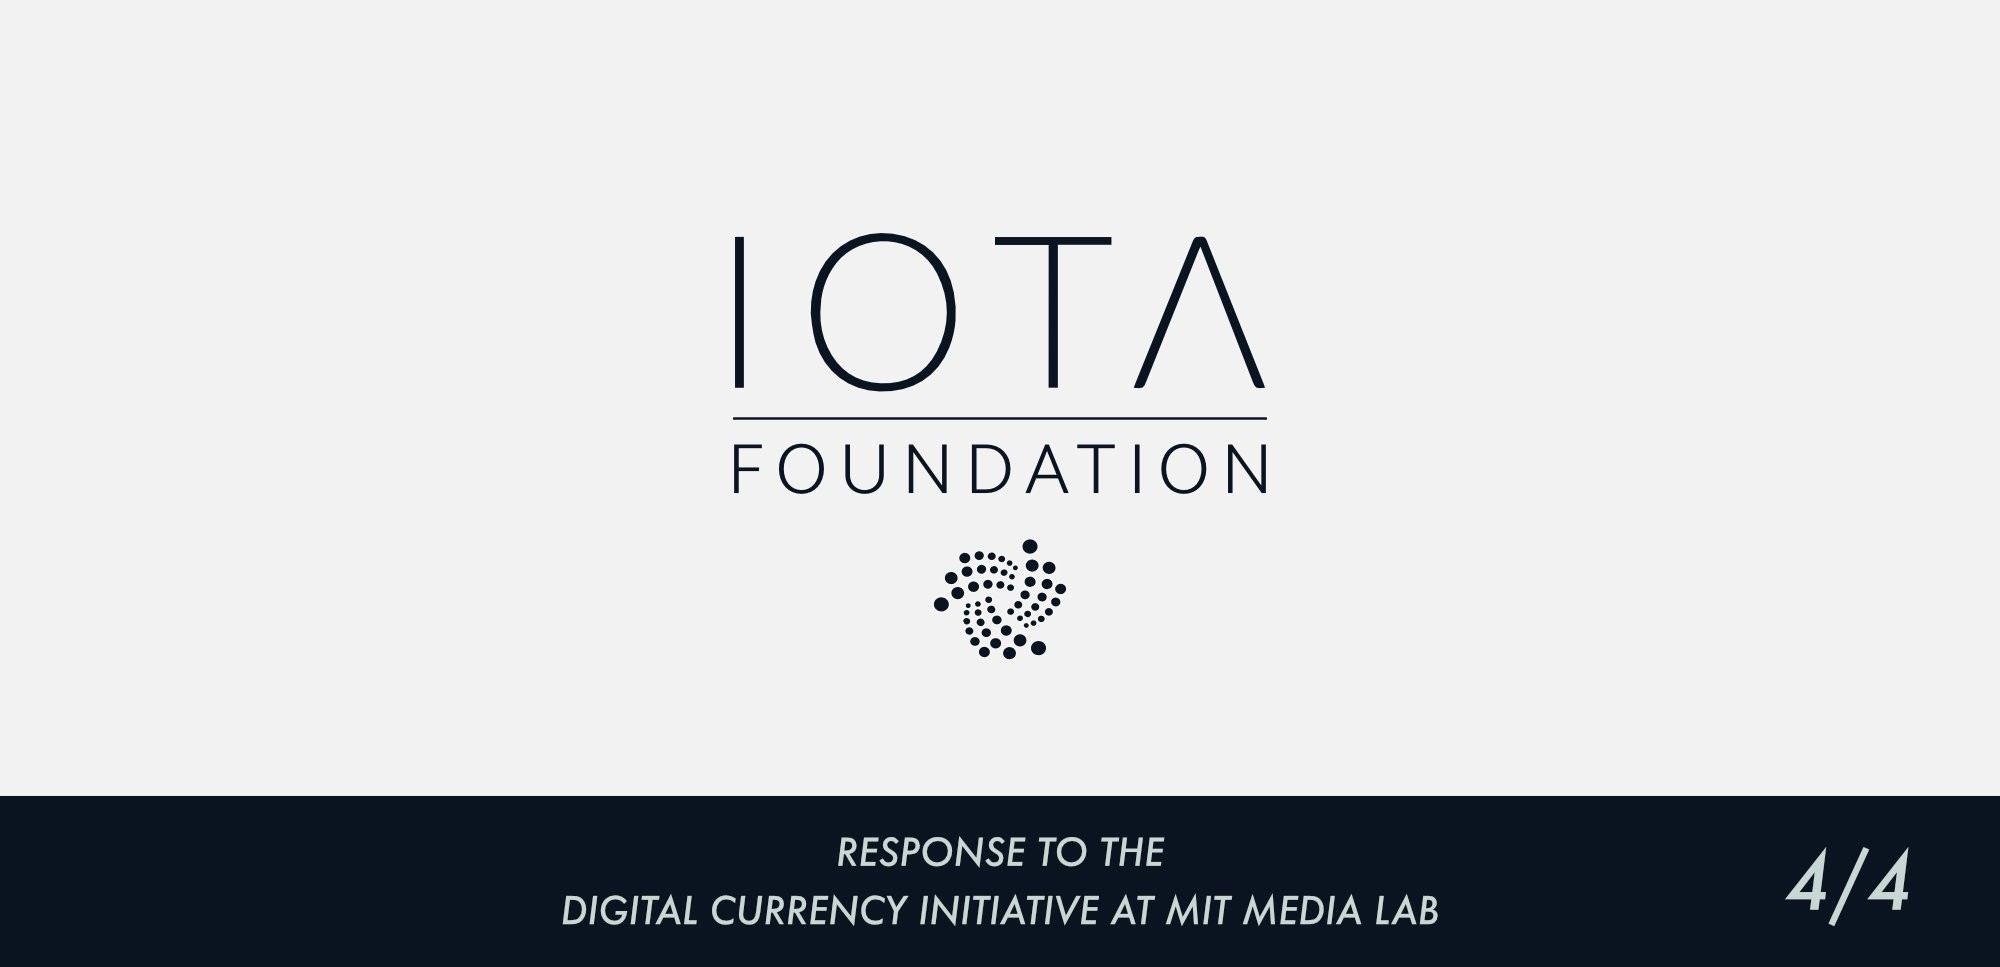 ficial IOTA Foundation Response to the Digital Currency Initiative